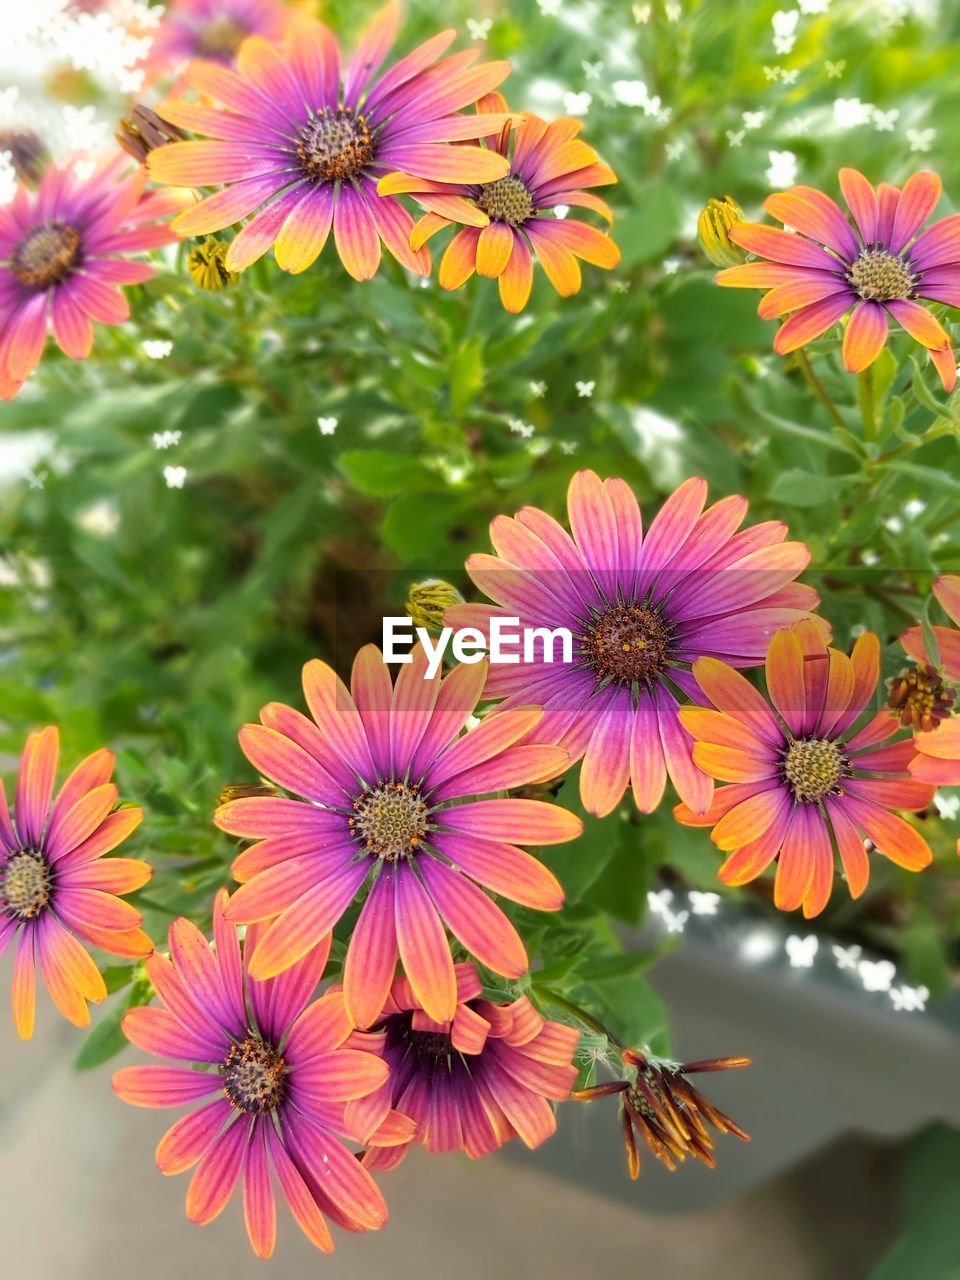 flowering plant, flower, vulnerability, freshness, fragility, plant, petal, beauty in nature, flower head, inflorescence, growth, close-up, no people, nature, pink color, pollen, day, focus on foreground, high angle view, osteospermum, purple